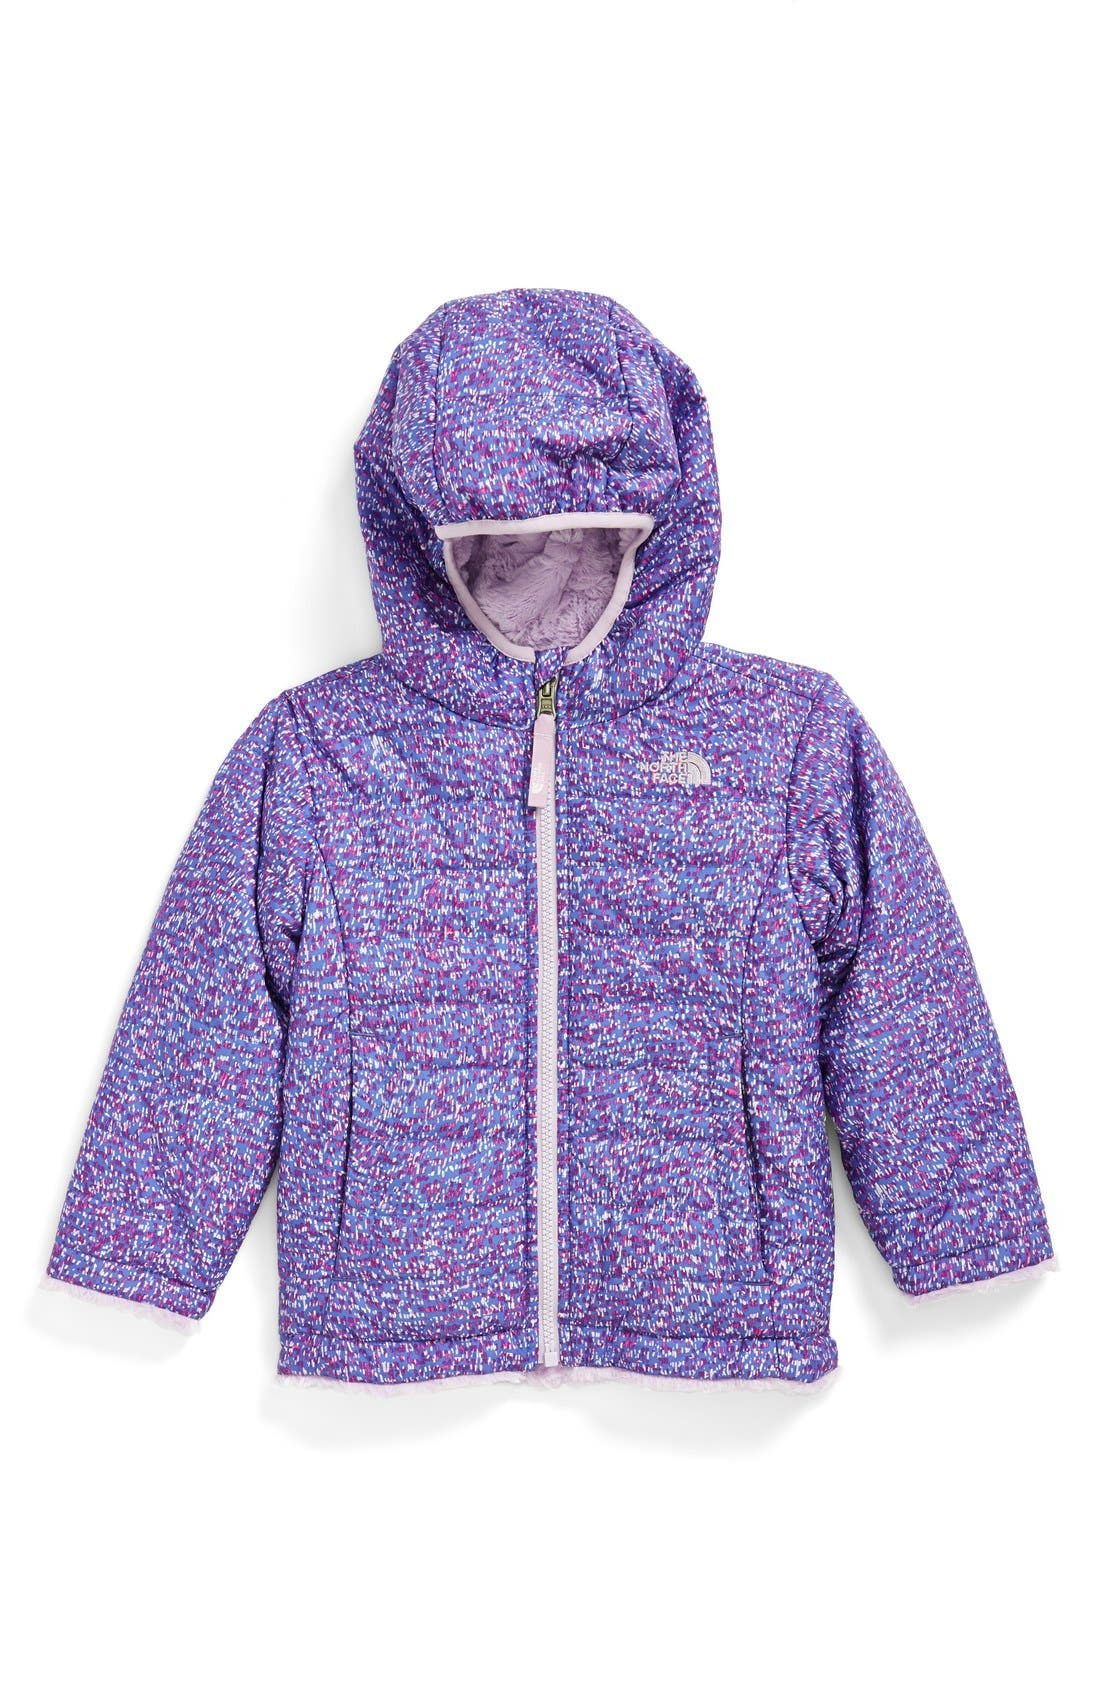 Main Image - The North Face 'Mossbud Swirl' Reversible Water Repellent Jacket (Baby Girls)